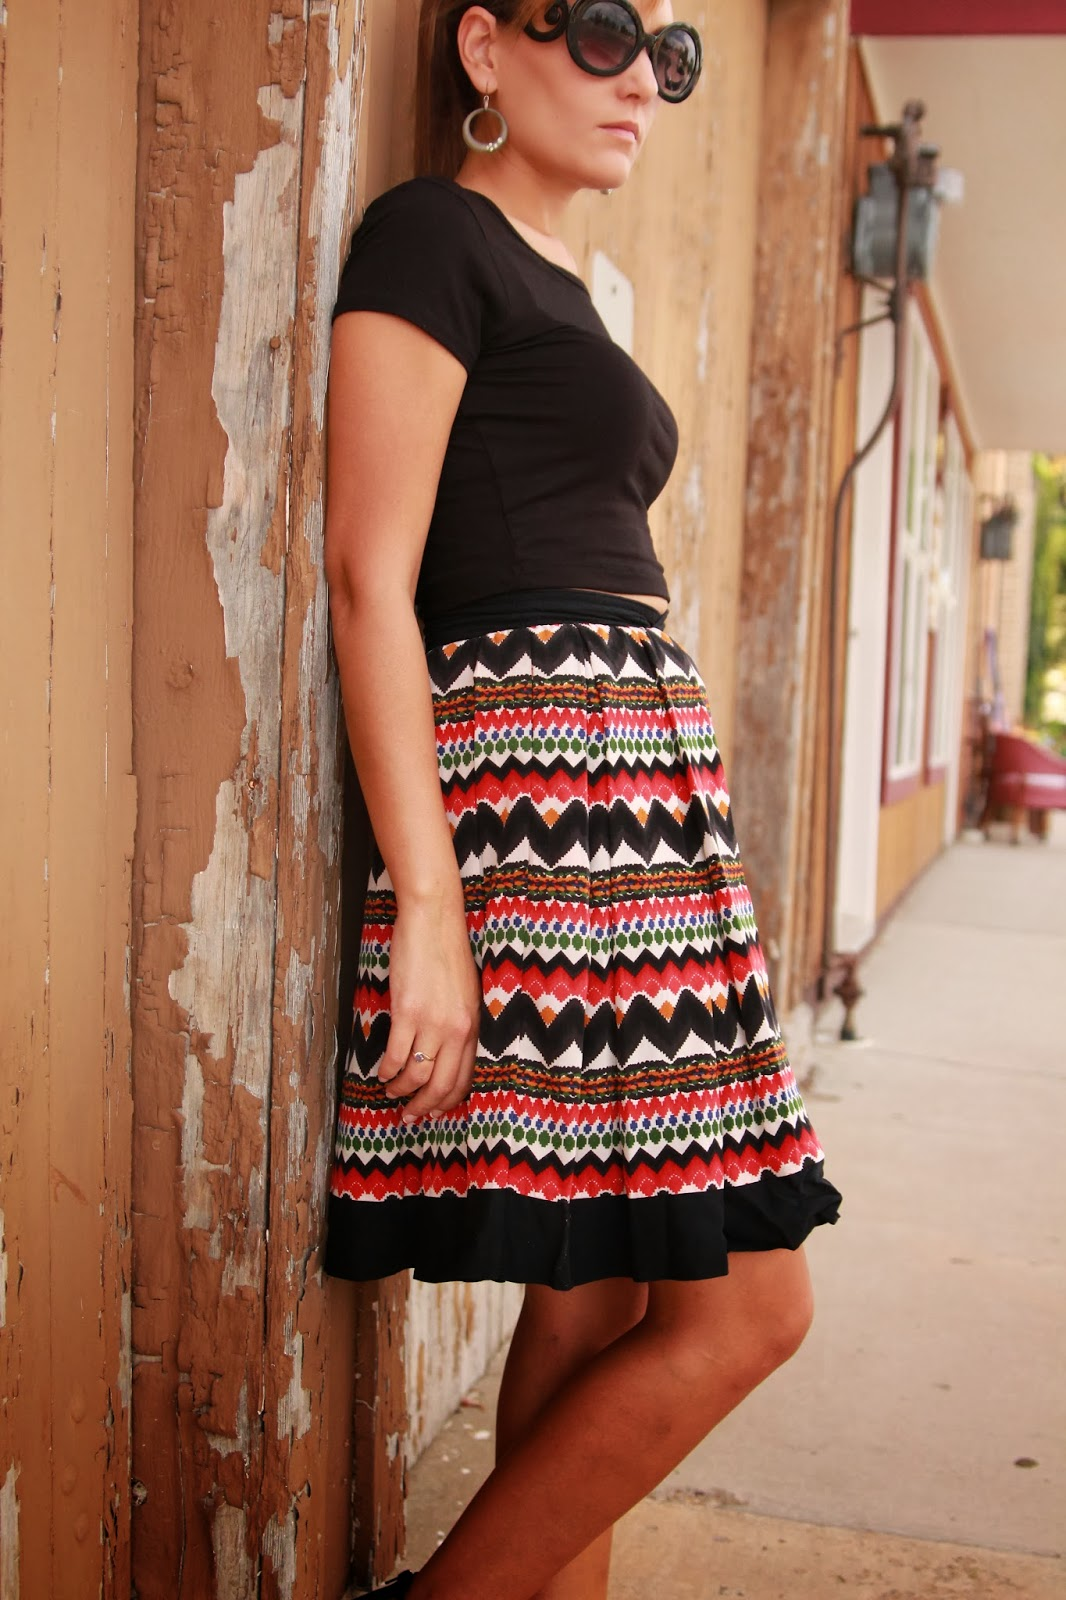 High Waisted Skirt And Crop Top Tumblr 2014-2015 | Fashion Trends 2016-2017